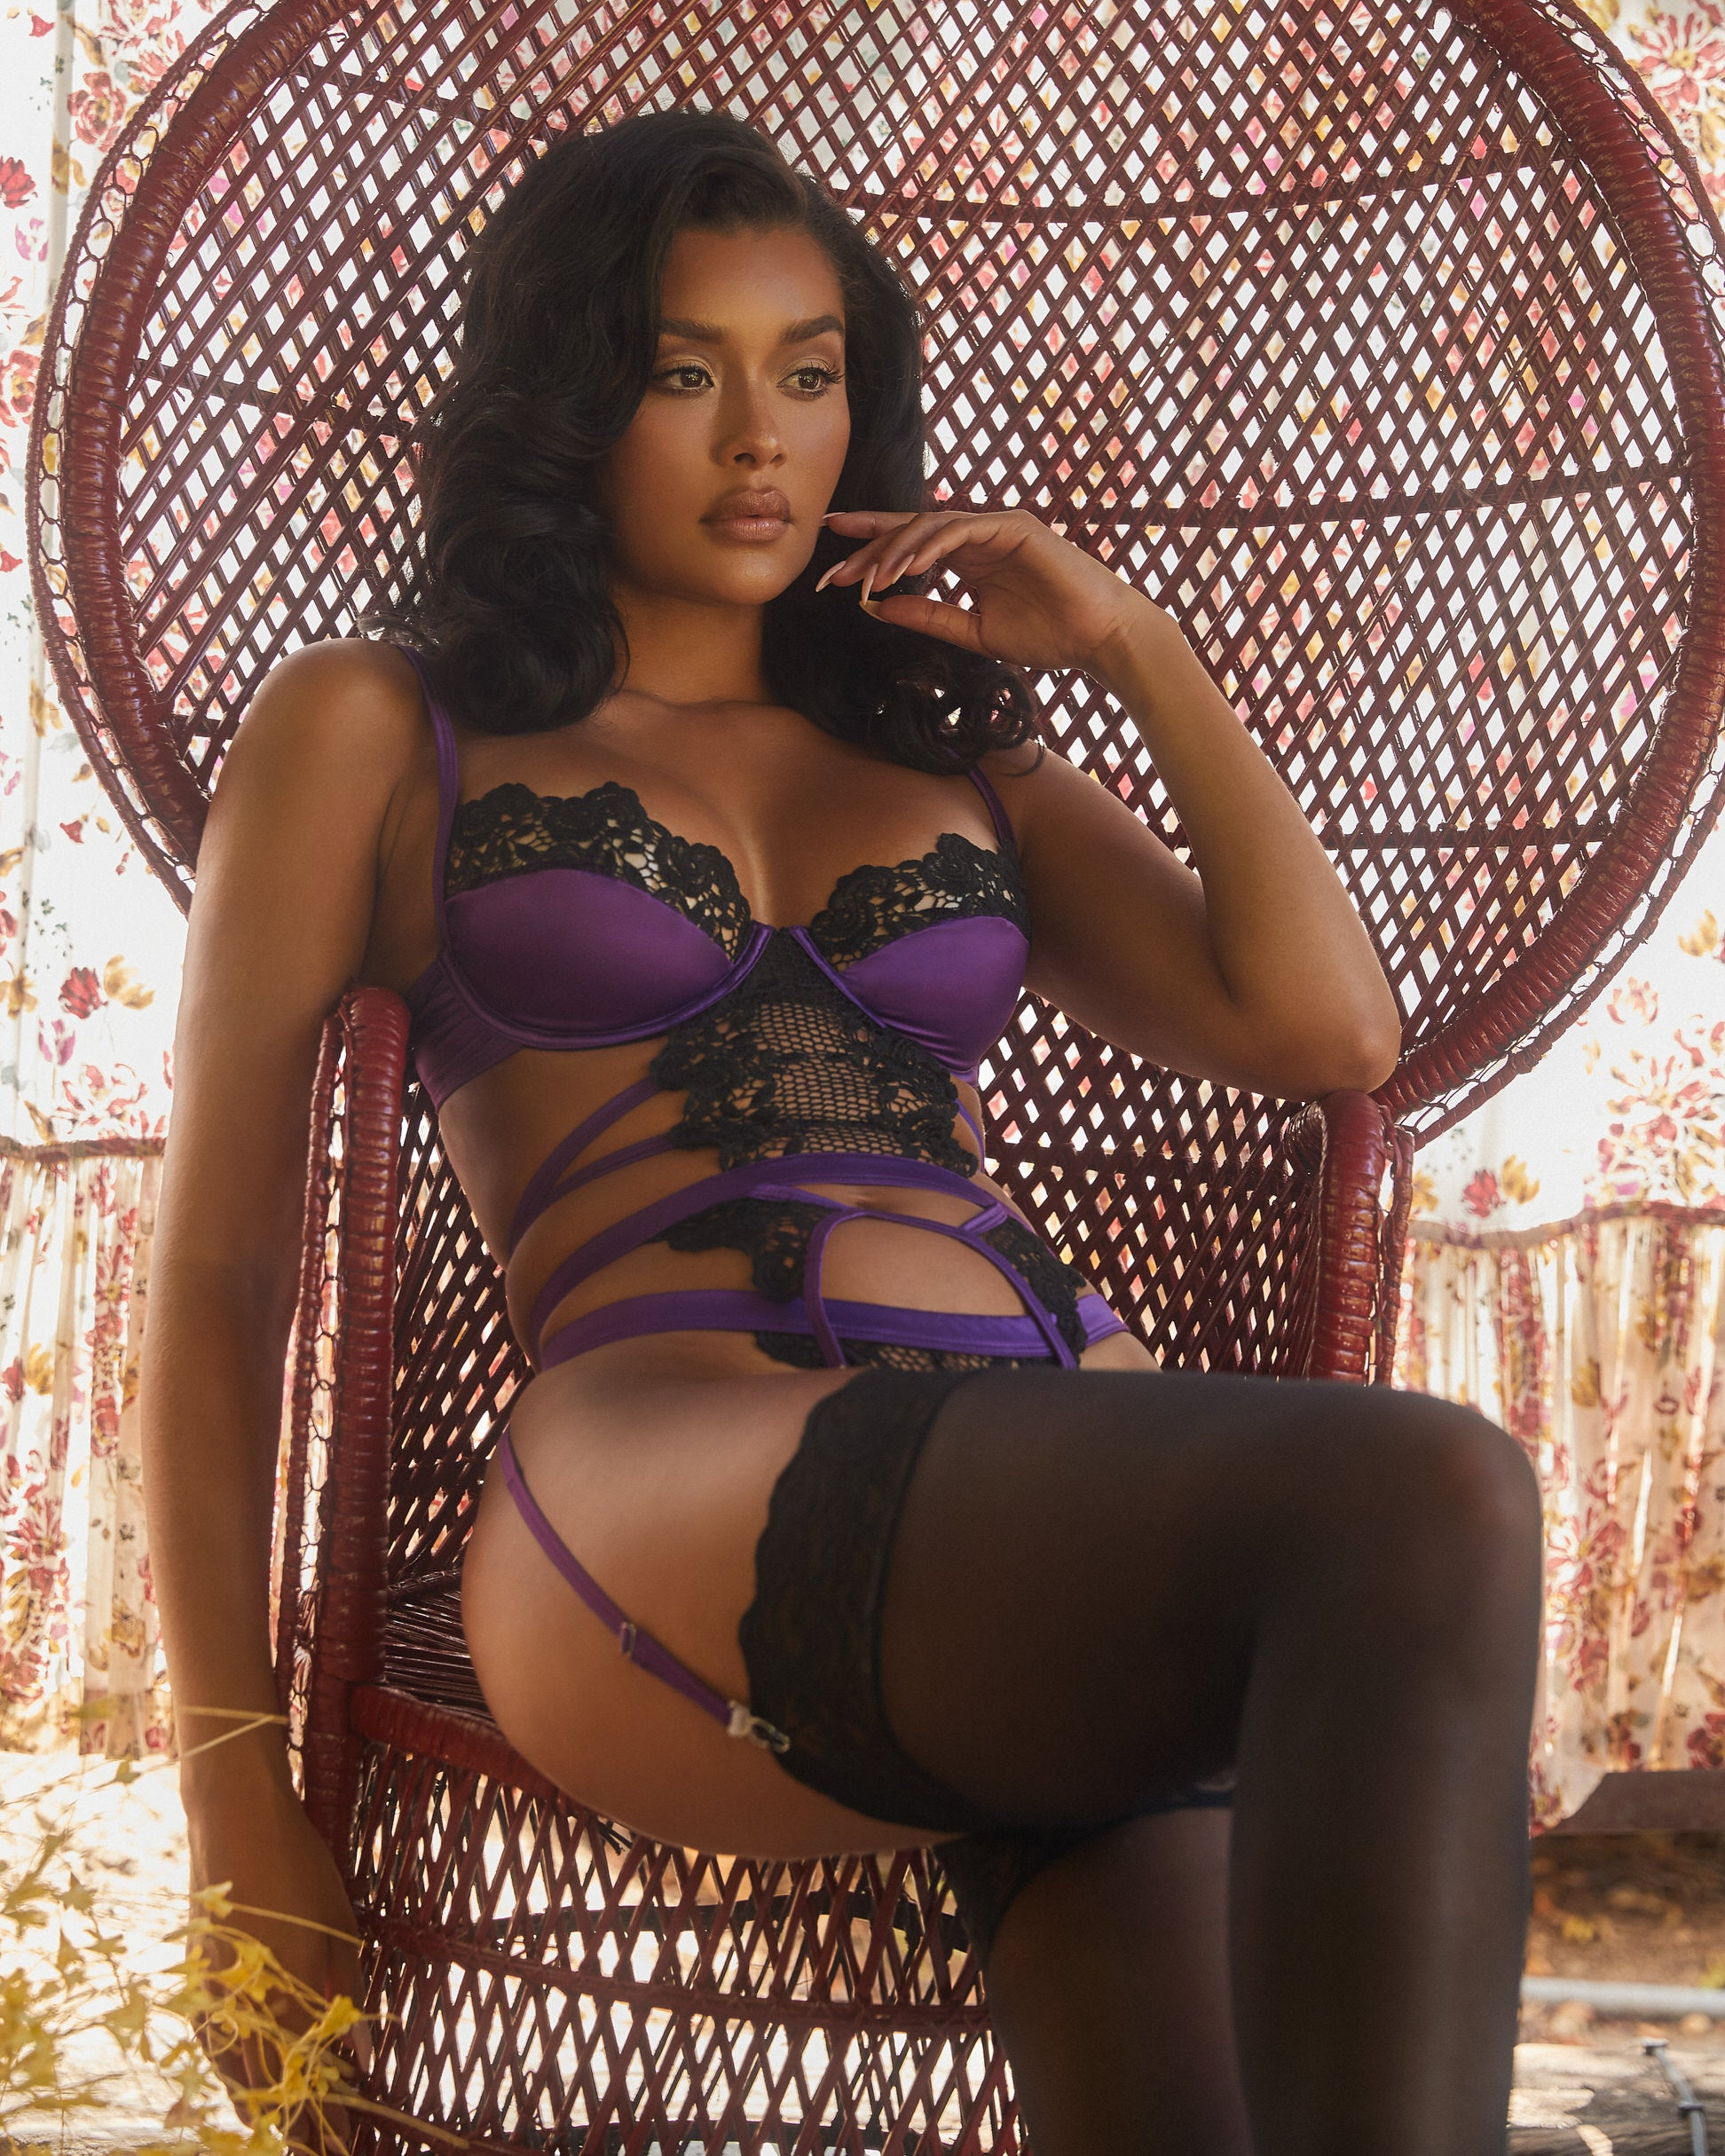 LI407 - 1pc Embroidered Lace & Satin Bustier Set